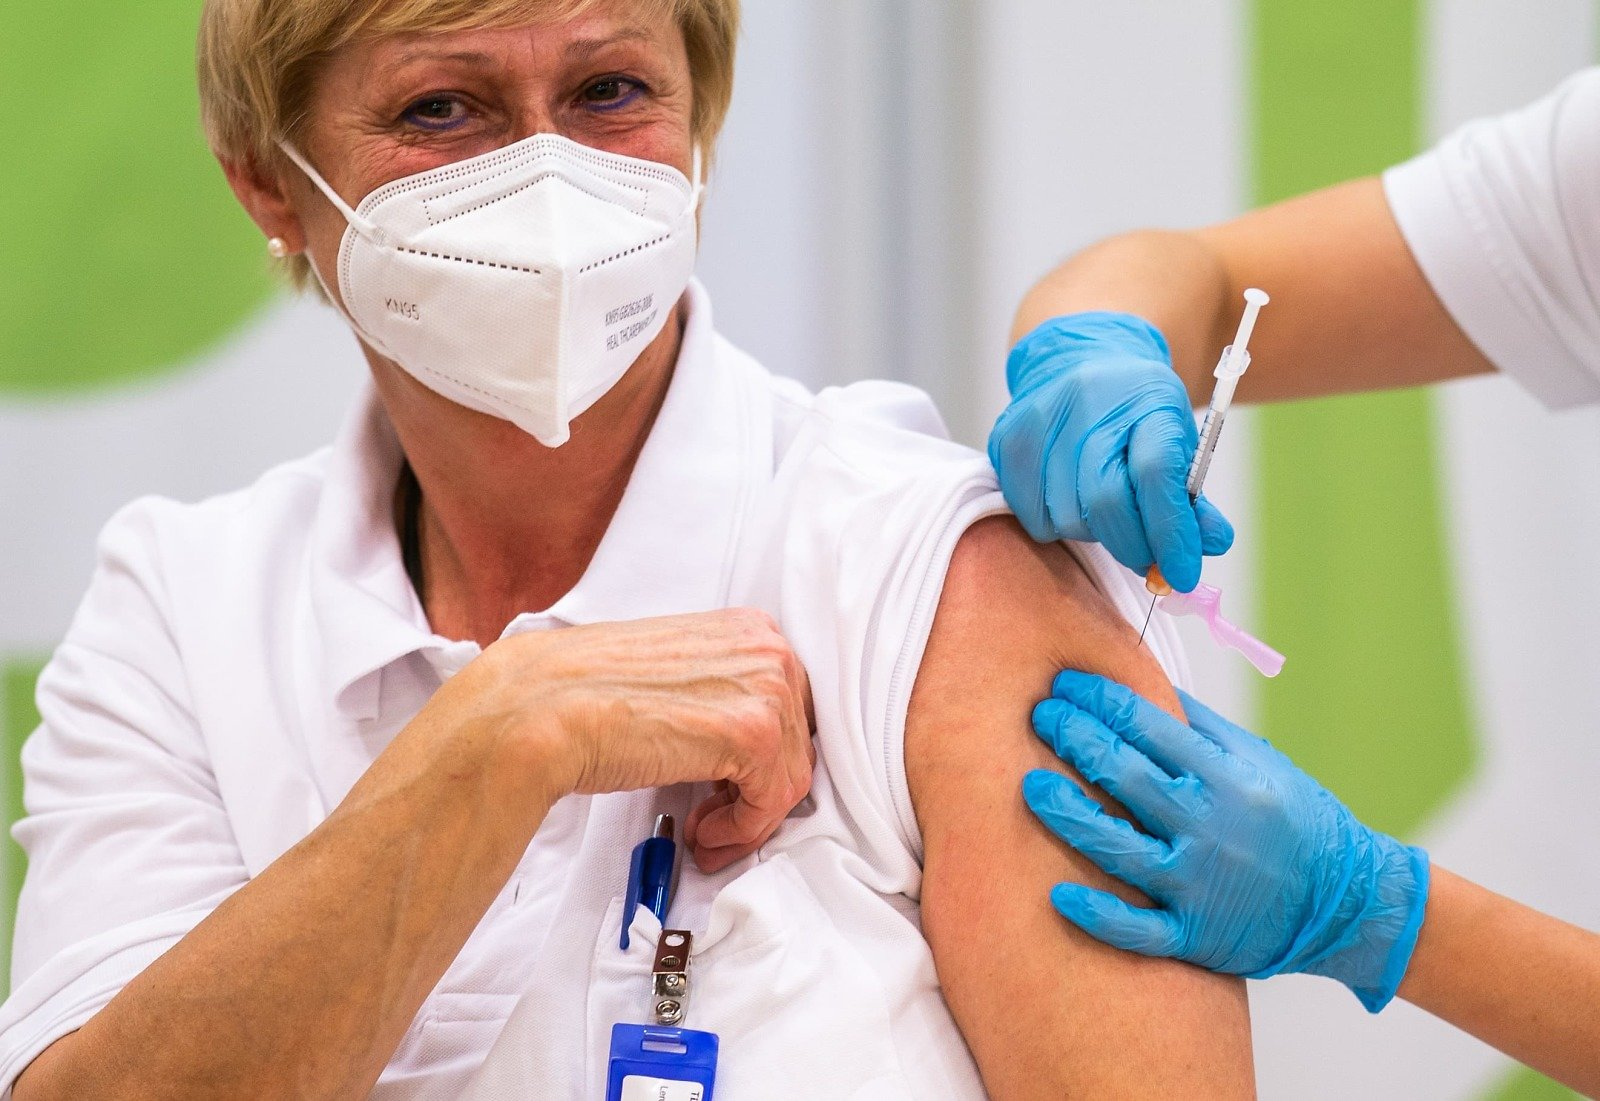 EU Administers First Covid Vaccine Doses in Long-awaited Rollout